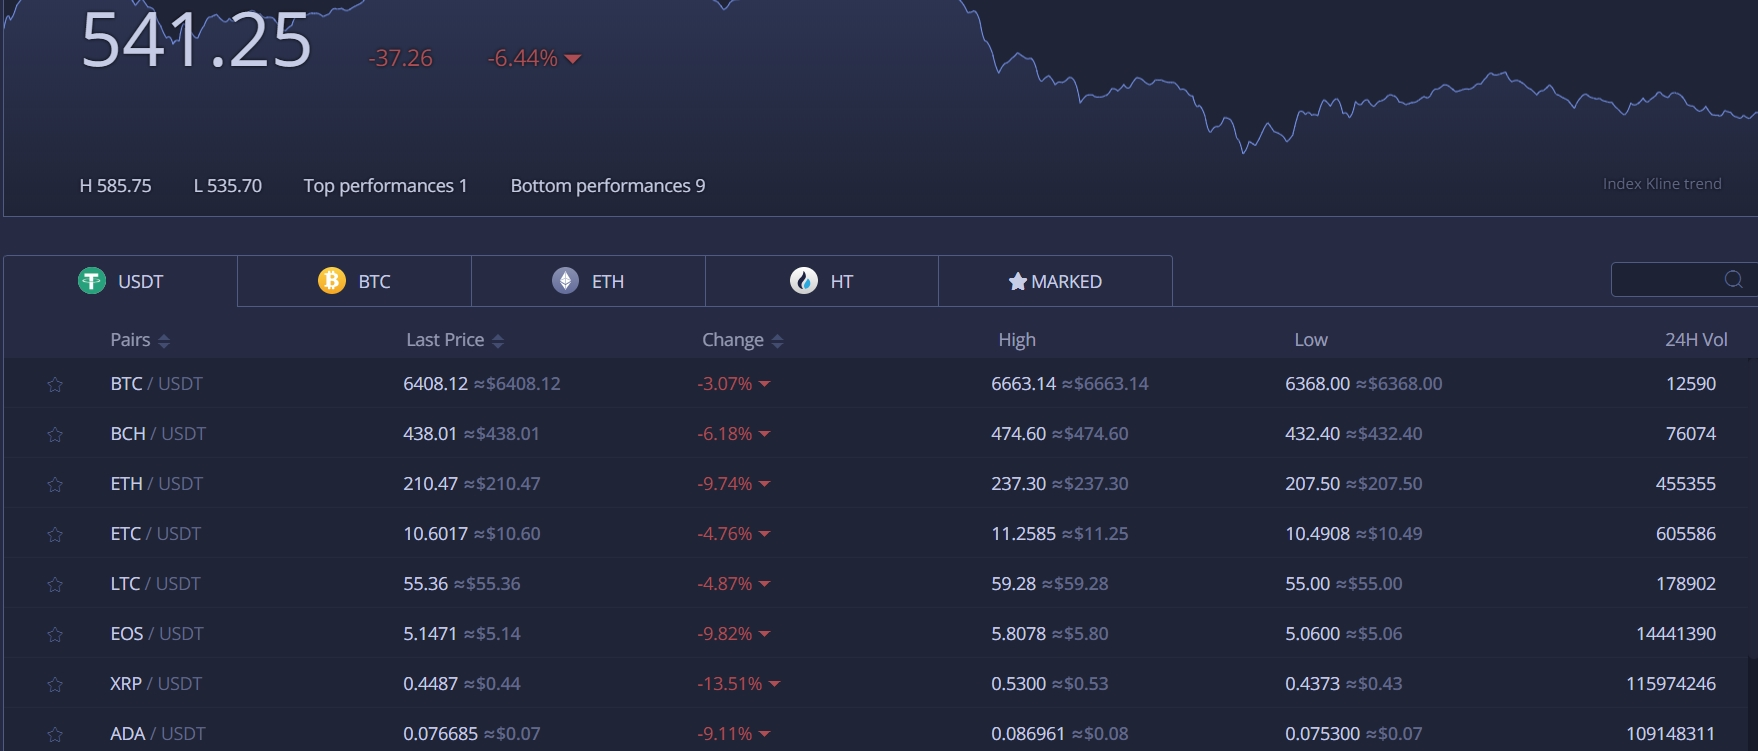 Huobi supported currencies